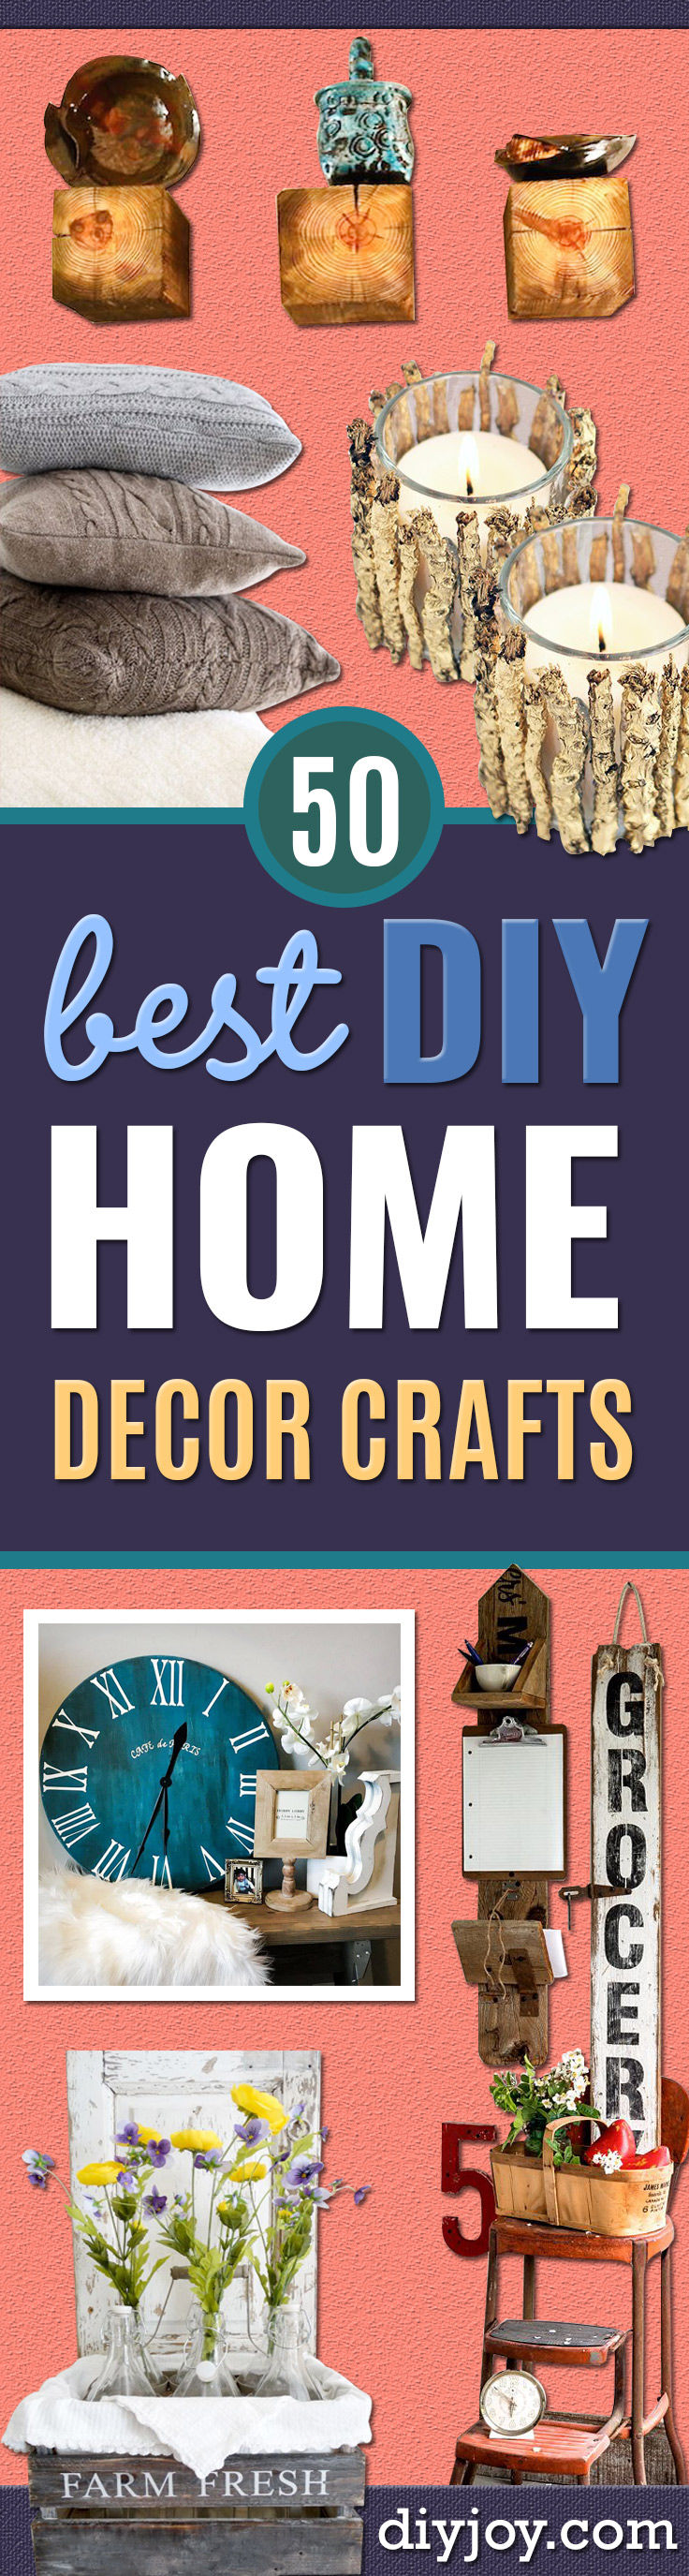 Best DIY Home Decor Crafts - Easy Craft Ideas To Make From Dollar Store Items - Cheap Wall Art, Easy Do It Yourself Gifts, Modern Wall Art On A Budget, Tabletop and Centerpiece Tutorials - Cool But Affordable Room and Home Decor With Step by Step Tutorials http://diyjoy.com/diy-home-decor-crafts